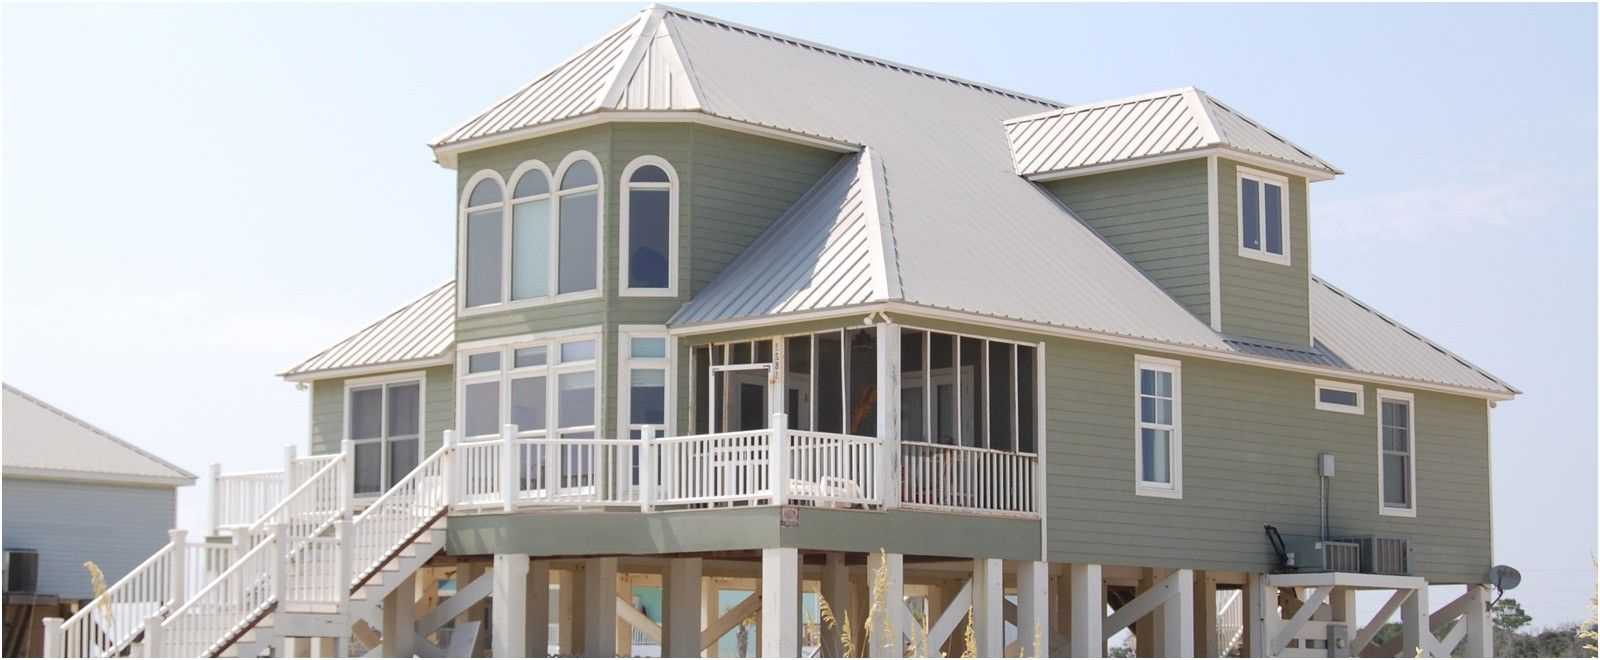 gulf coast rentals beach front vacation rental house rental from rh pinterest com